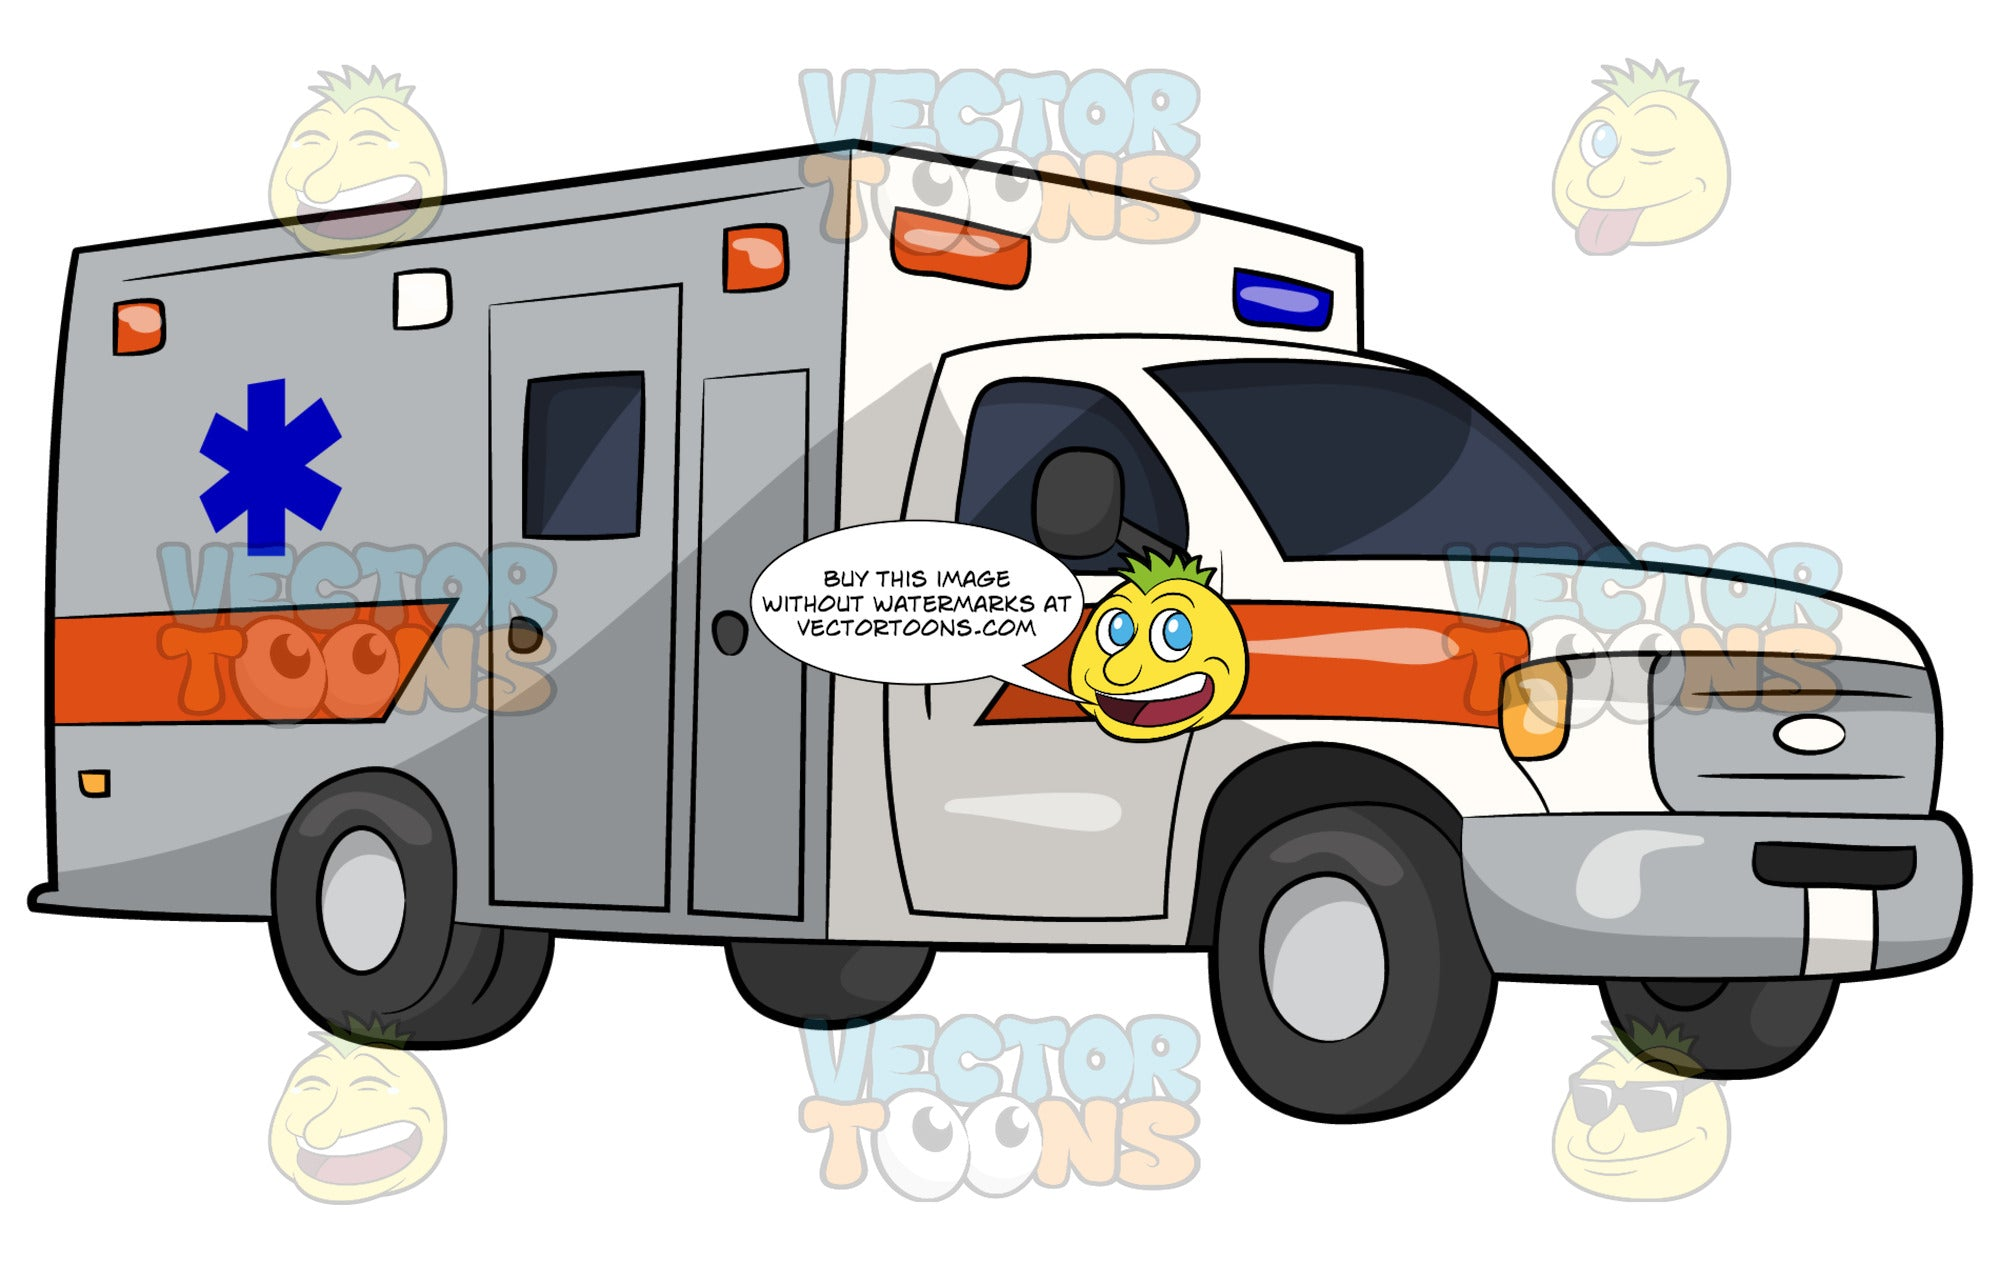 A Modern Ambulance. A white emergency service vehicle with two doors on the side, a blue emergency medical technician symbol on the side, orange stripes on the side and blue, orange and white lights on the front and side